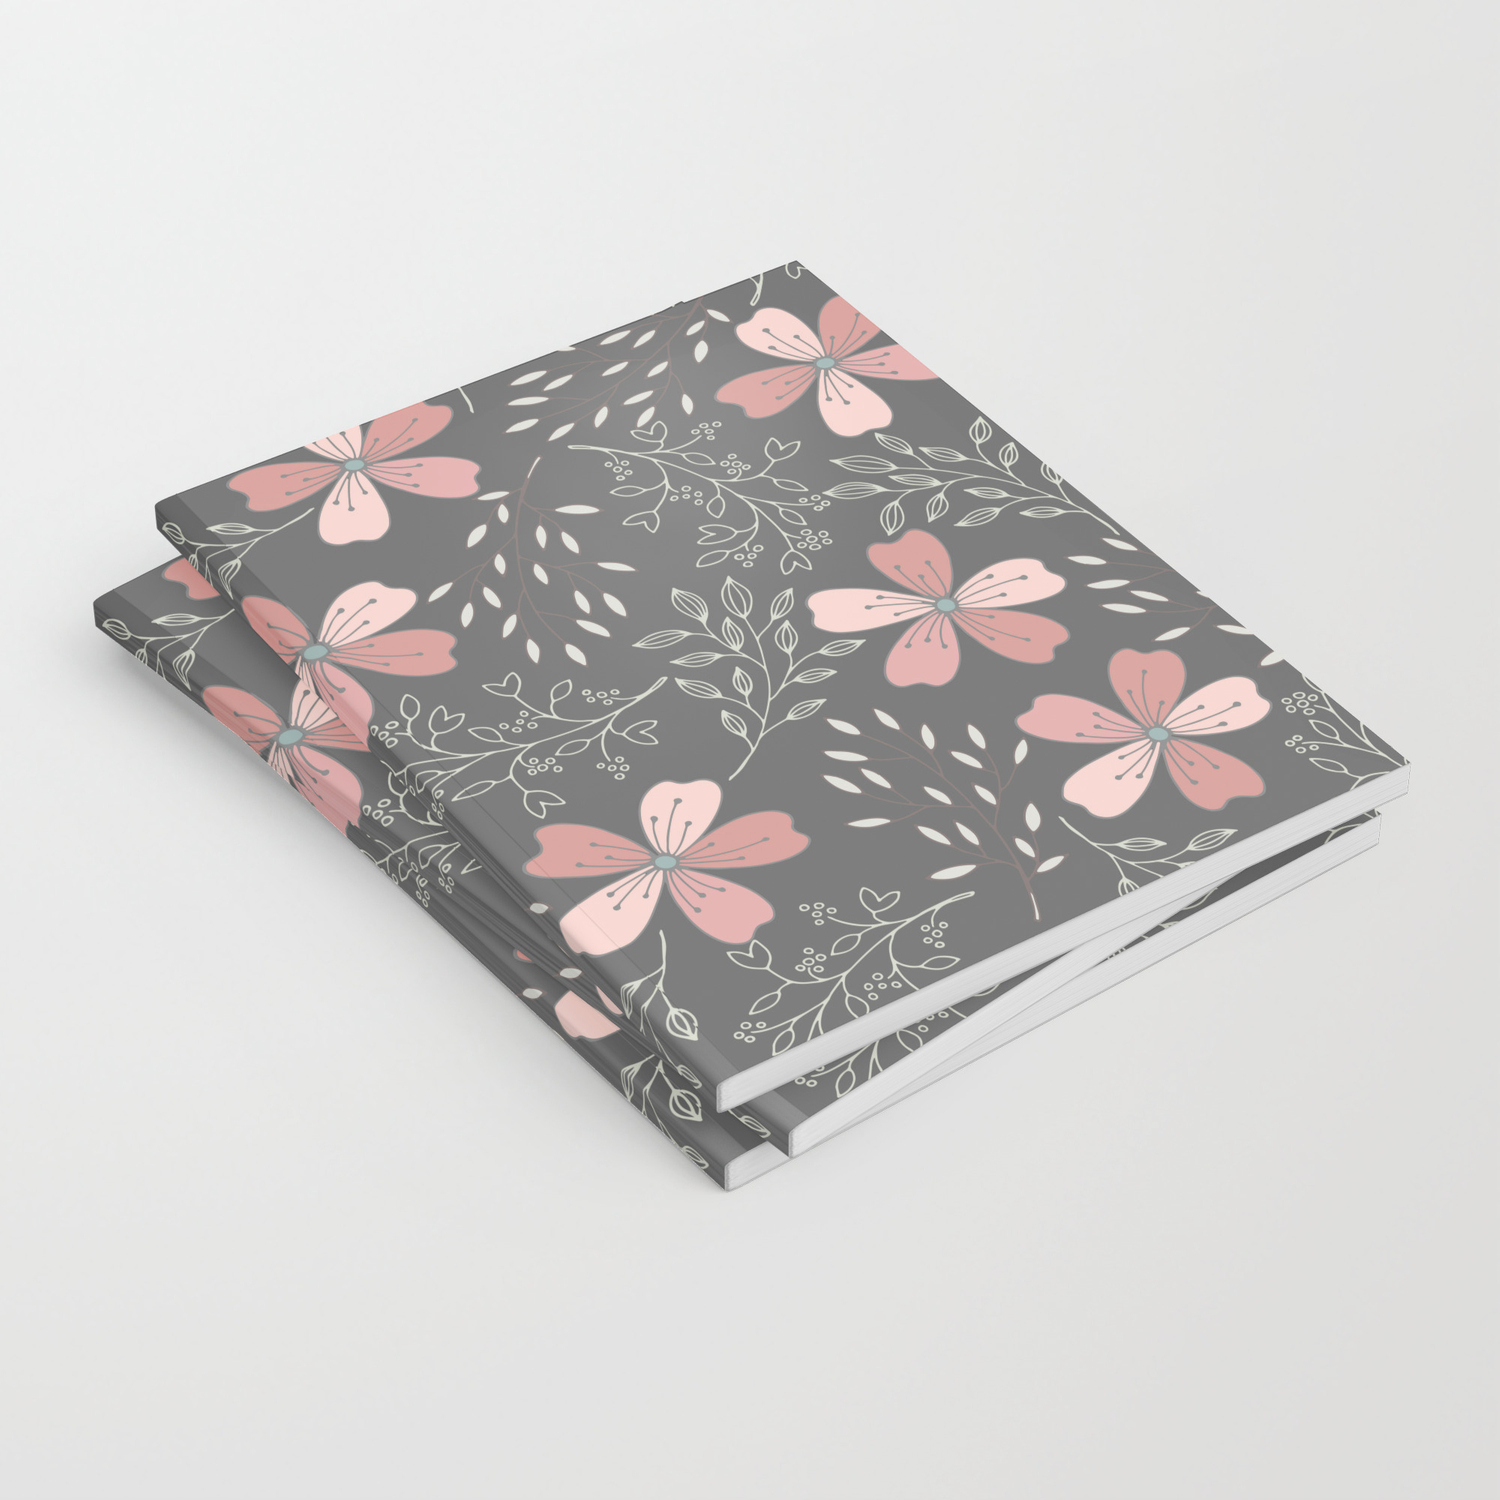 Pink Flowers on Gray background with vines Notebook by peppermintcreek |  Society6